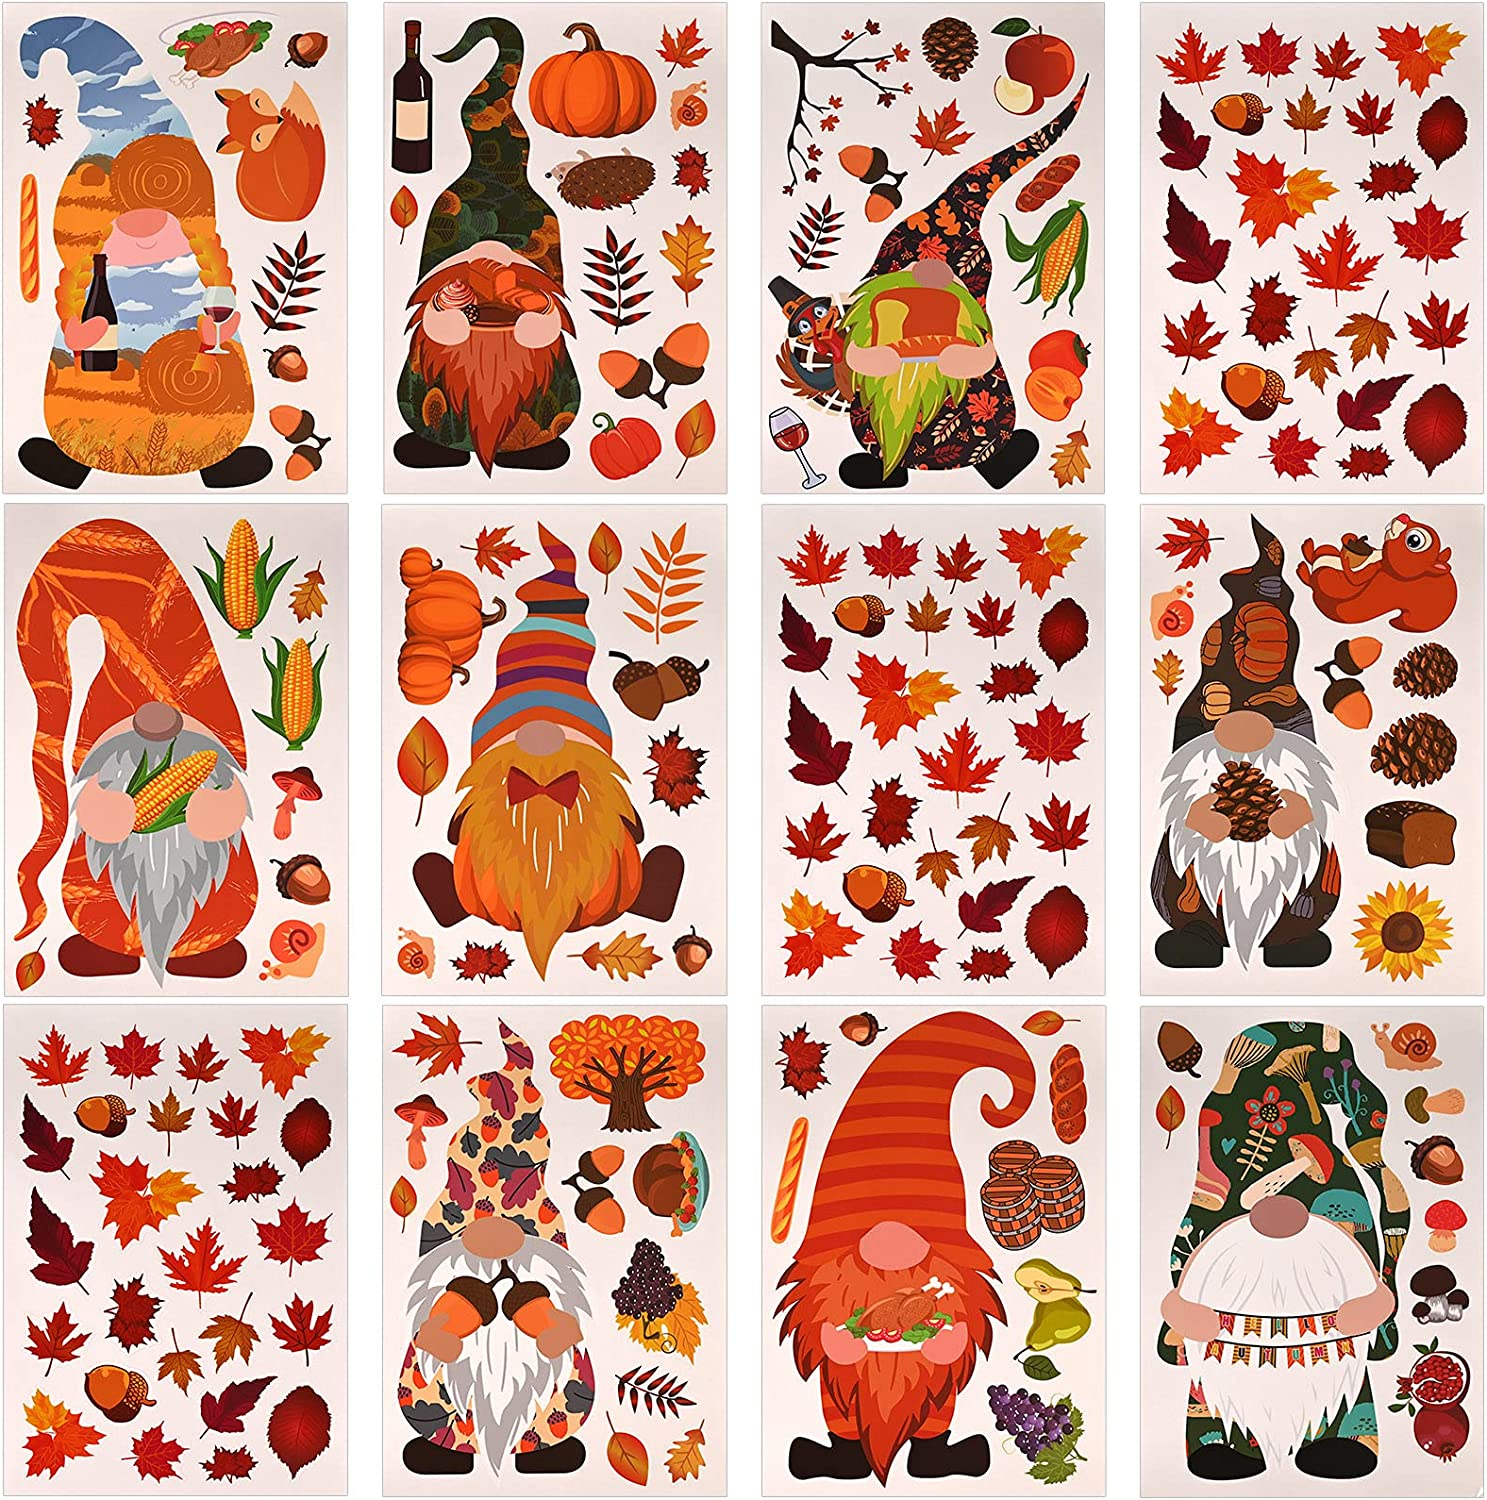 168 PCS Thanksgiving Fall Finally popular brand Credence Window Sheets Double-Side Clings A 12